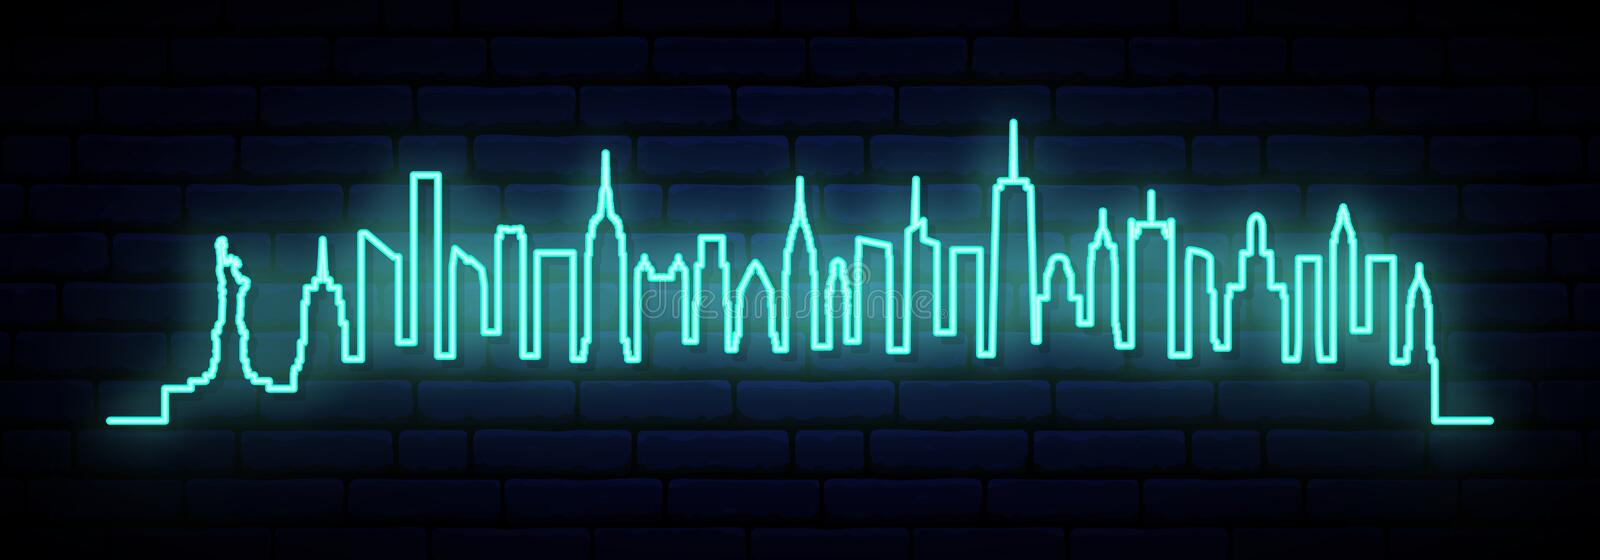 Blue neon skyline of New York city. vector illustration